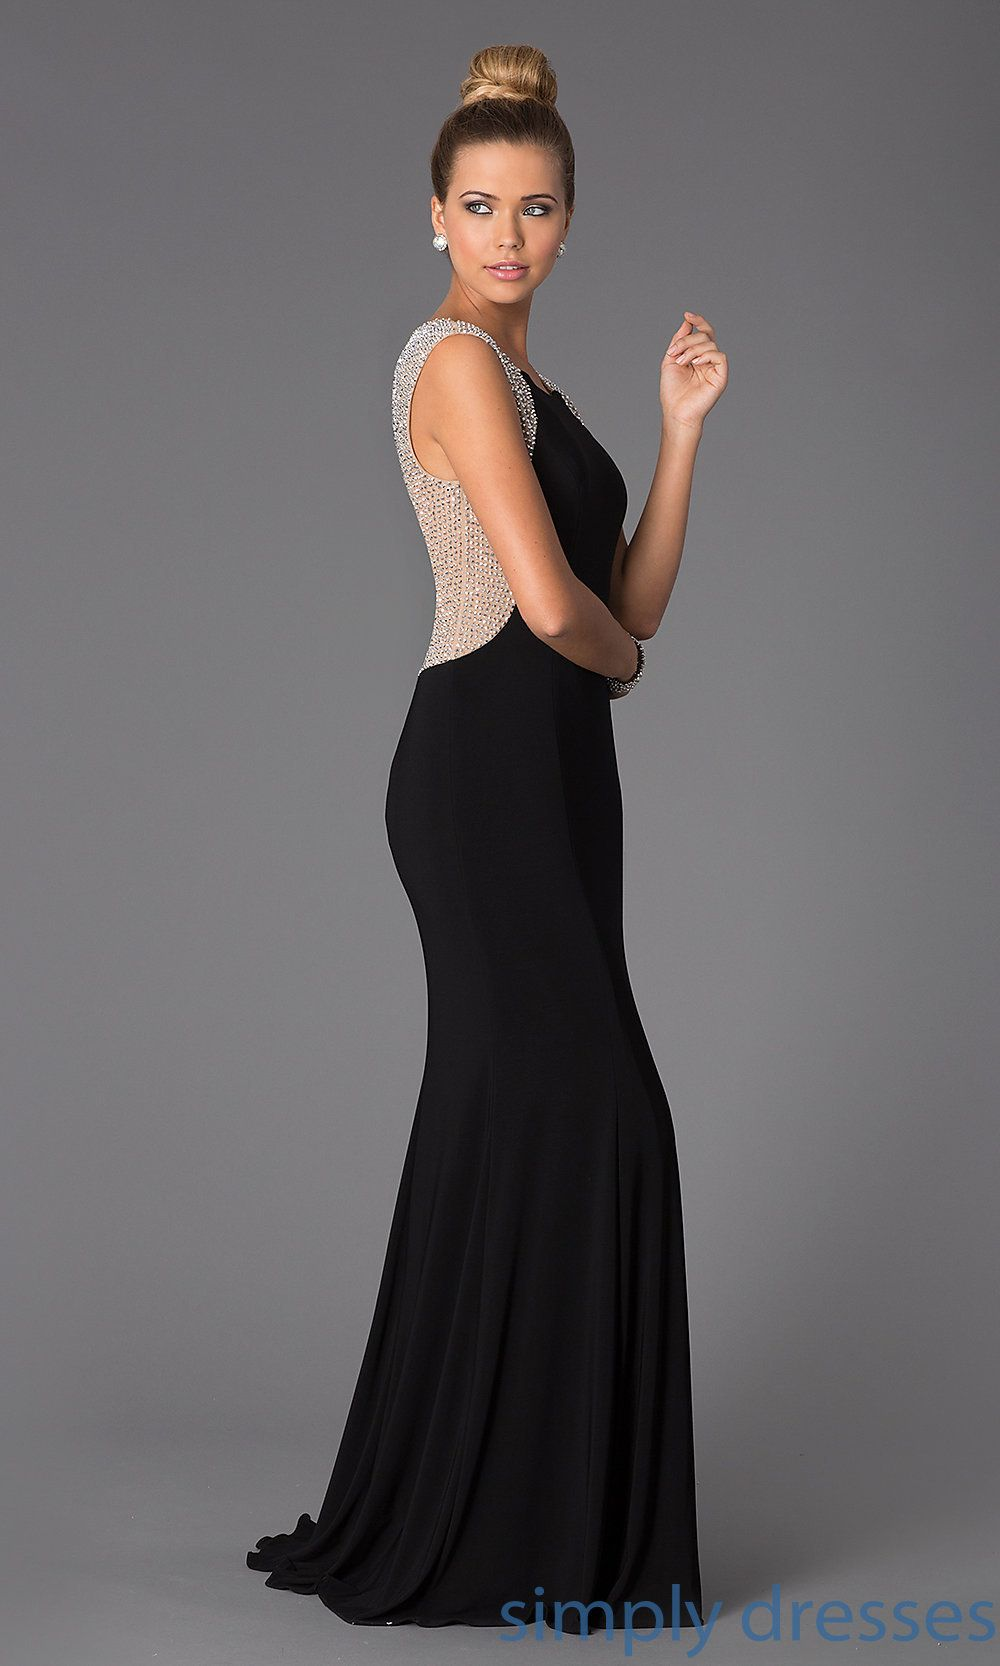 83ce251f Shop Simply Dresses for homecoming party dresses, 2015 prom dresses,  evening gowns, cocktail dresses, formal dresses, casual and career dresses.